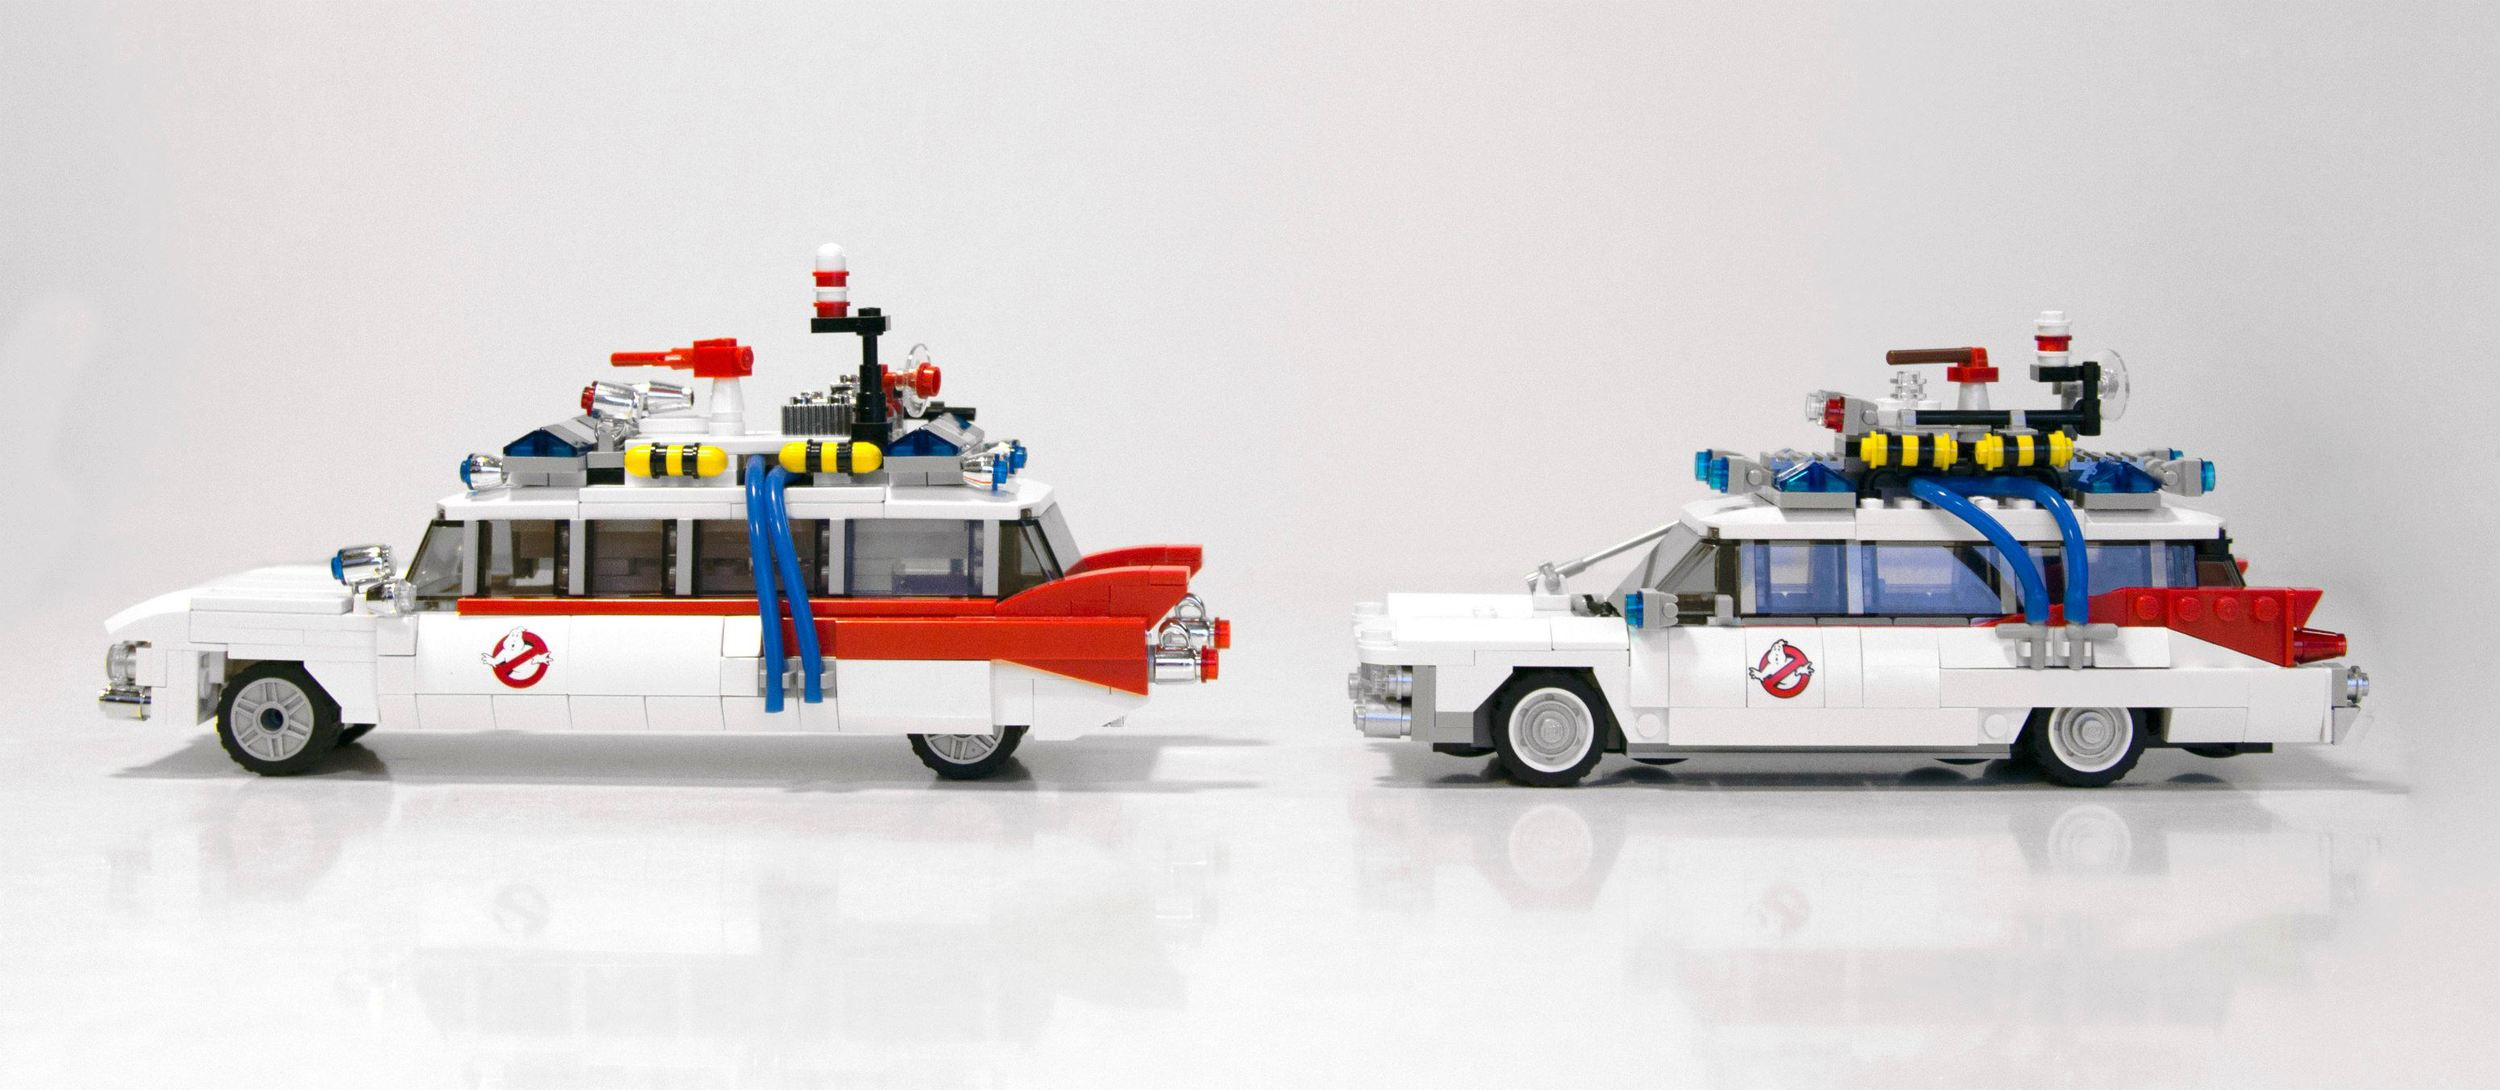 The Official Ghostbusters Ecto 1 Lego Play Set Revealed Geektyrant 75828 Ampamp 2 Comparison 8